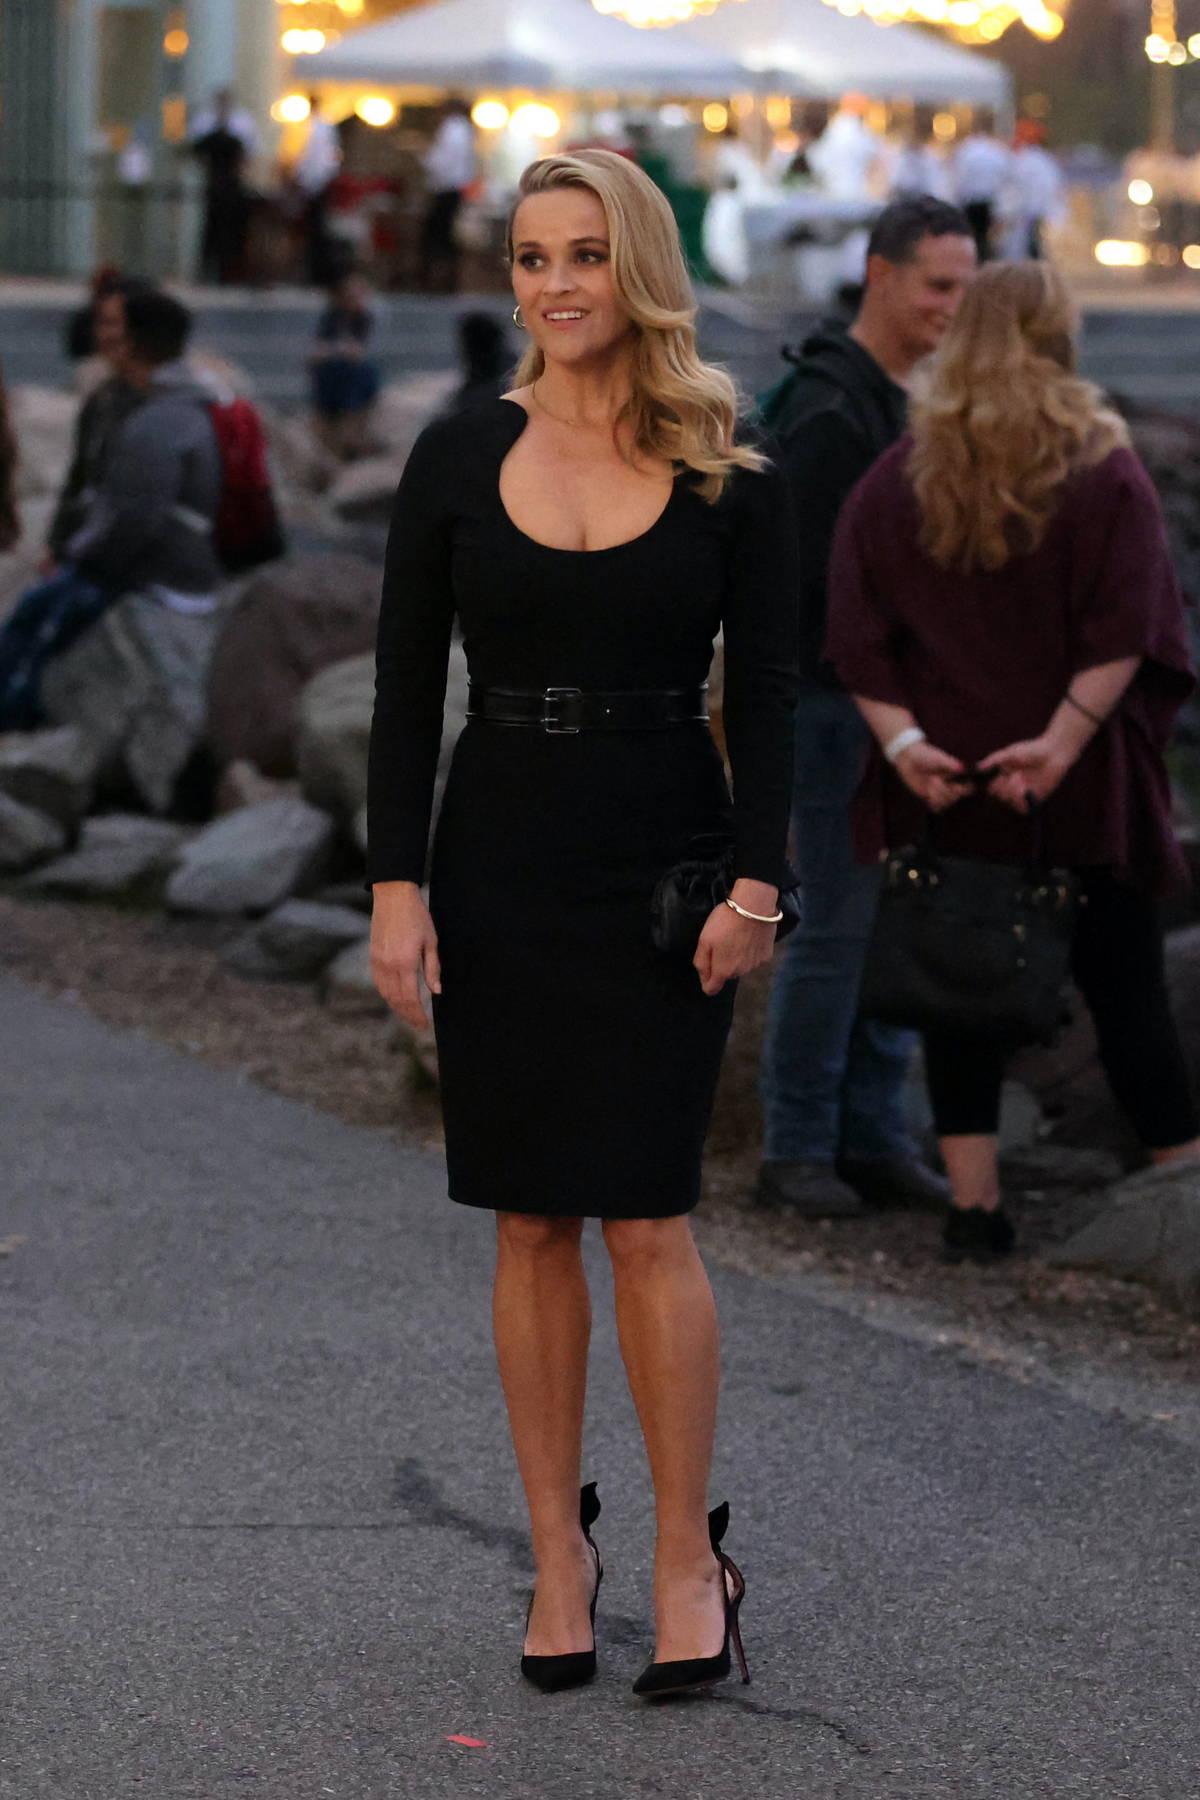 Reese Witherspoon looks amazing in black dress while filming 'Your Place or Mine' in Brooklyn, New York